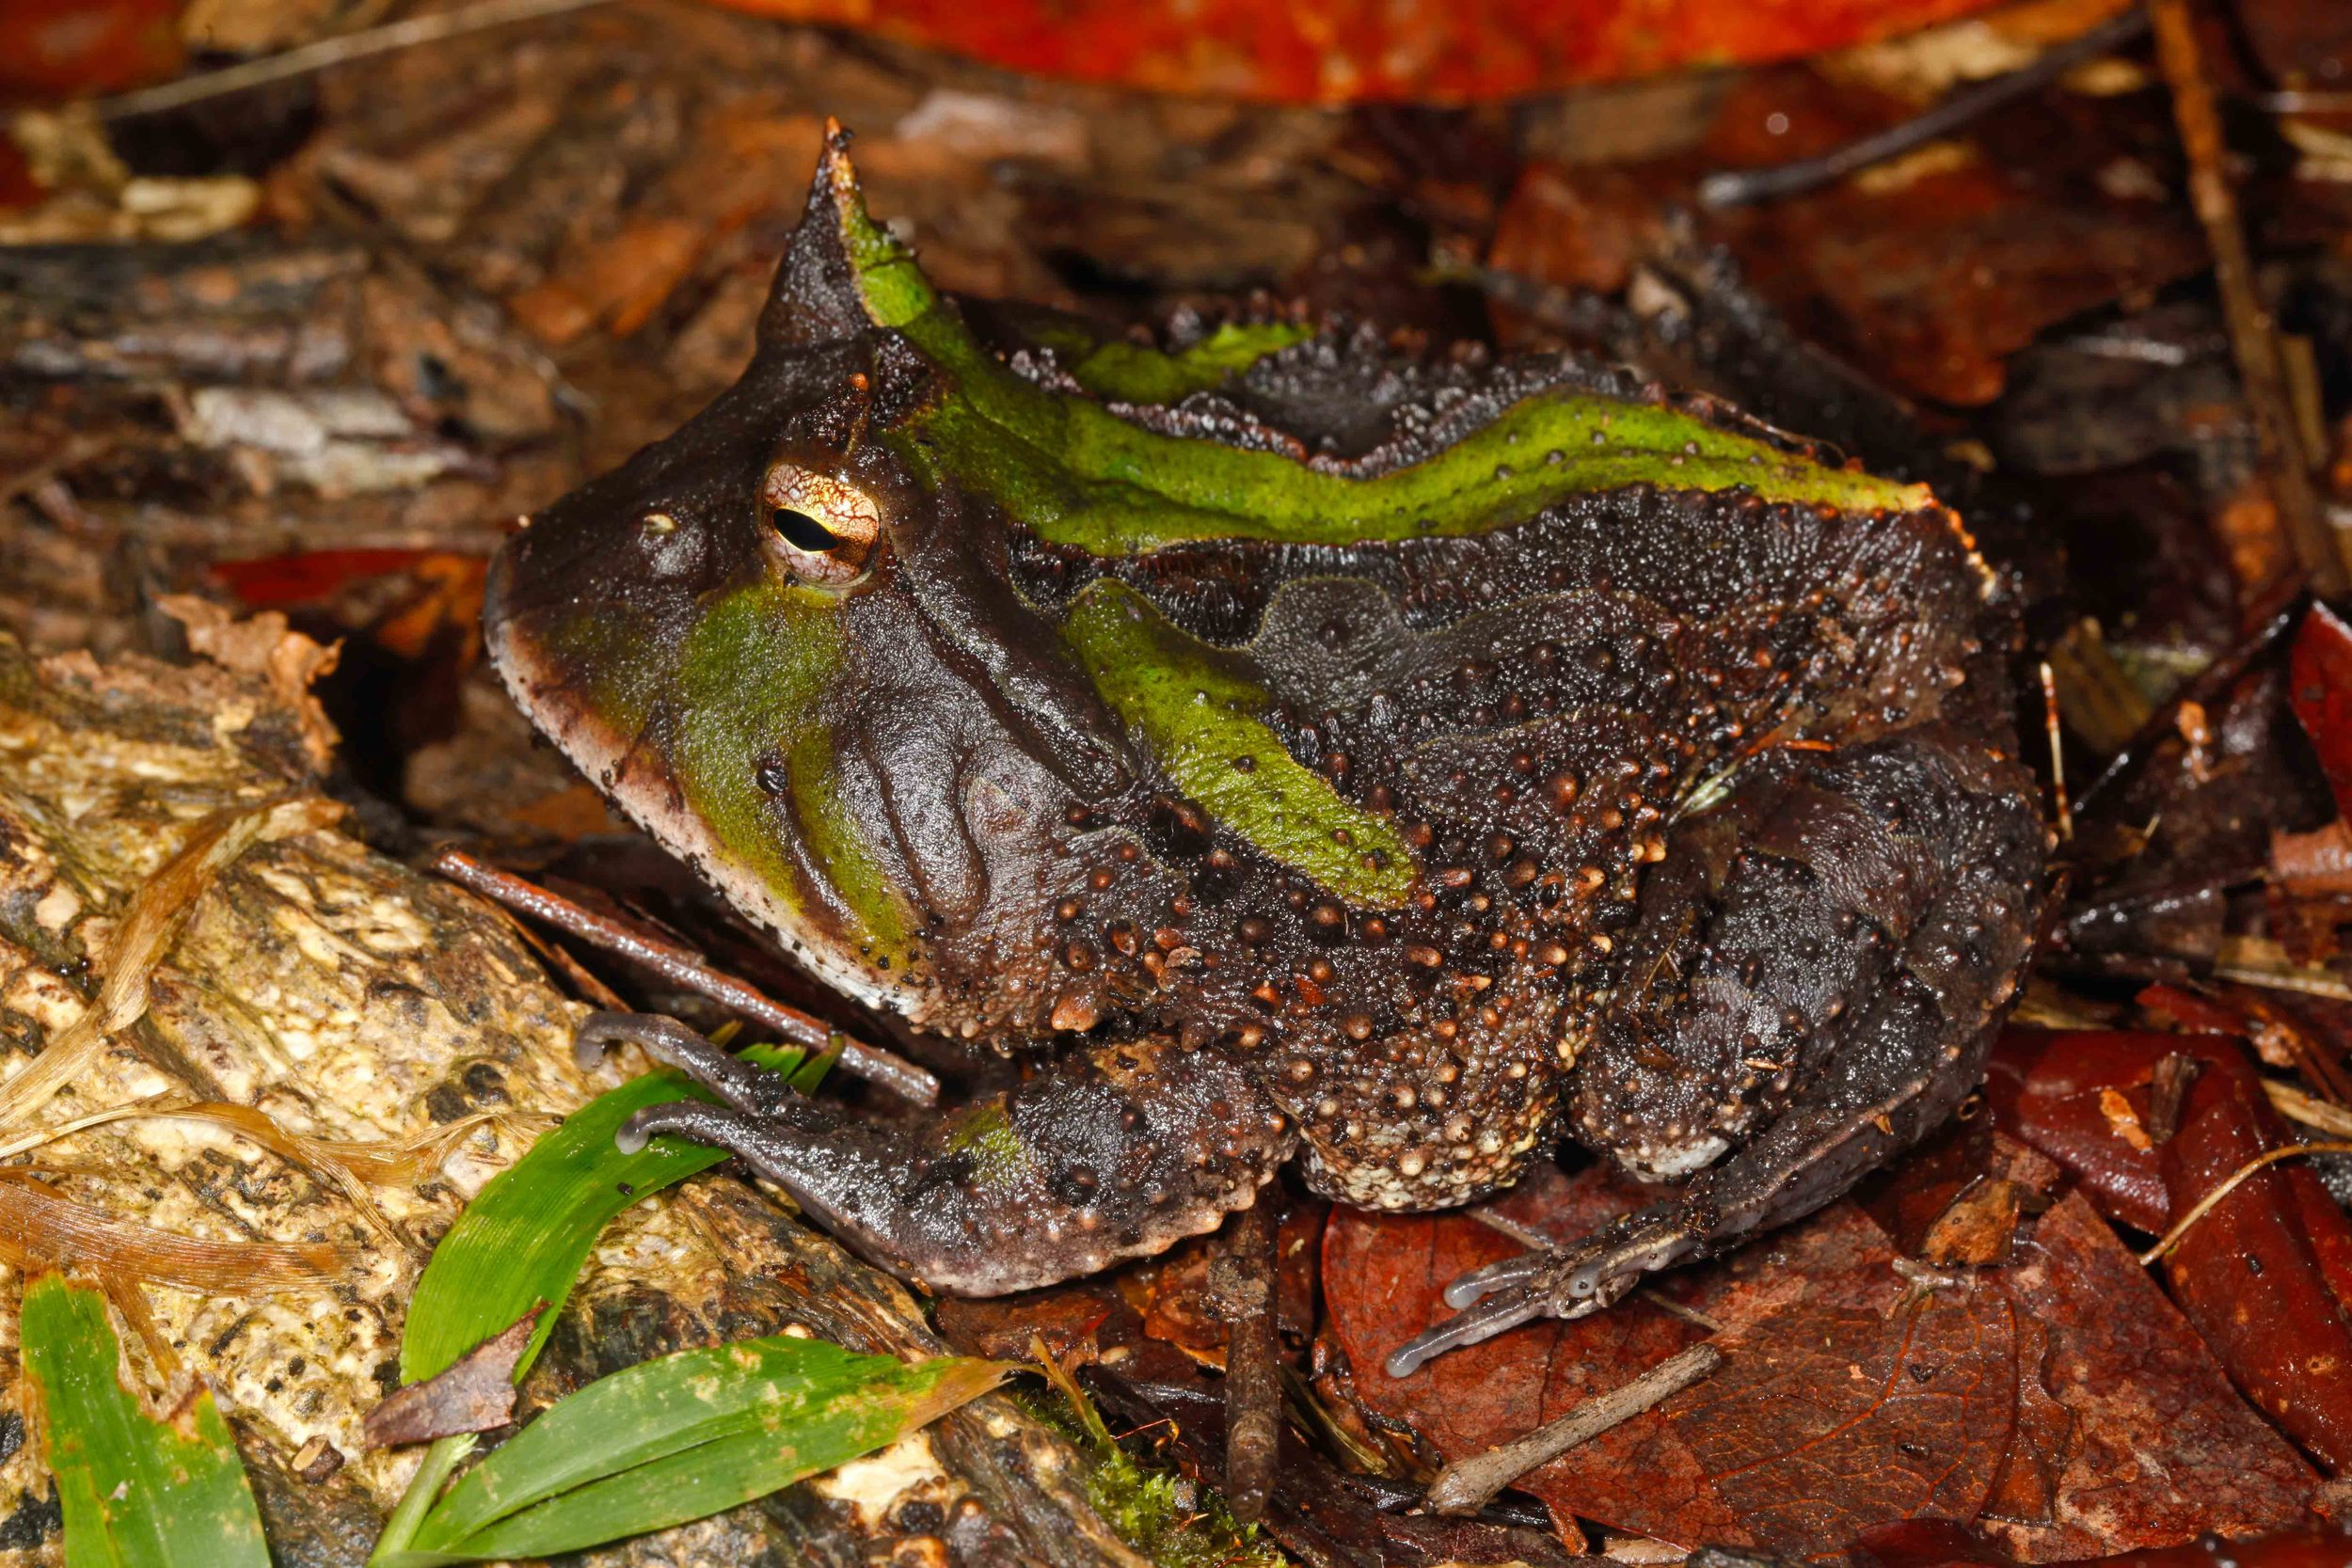 Ceratophrys cornuta, Surinam Horned Frog (Photo by Matt Cage)